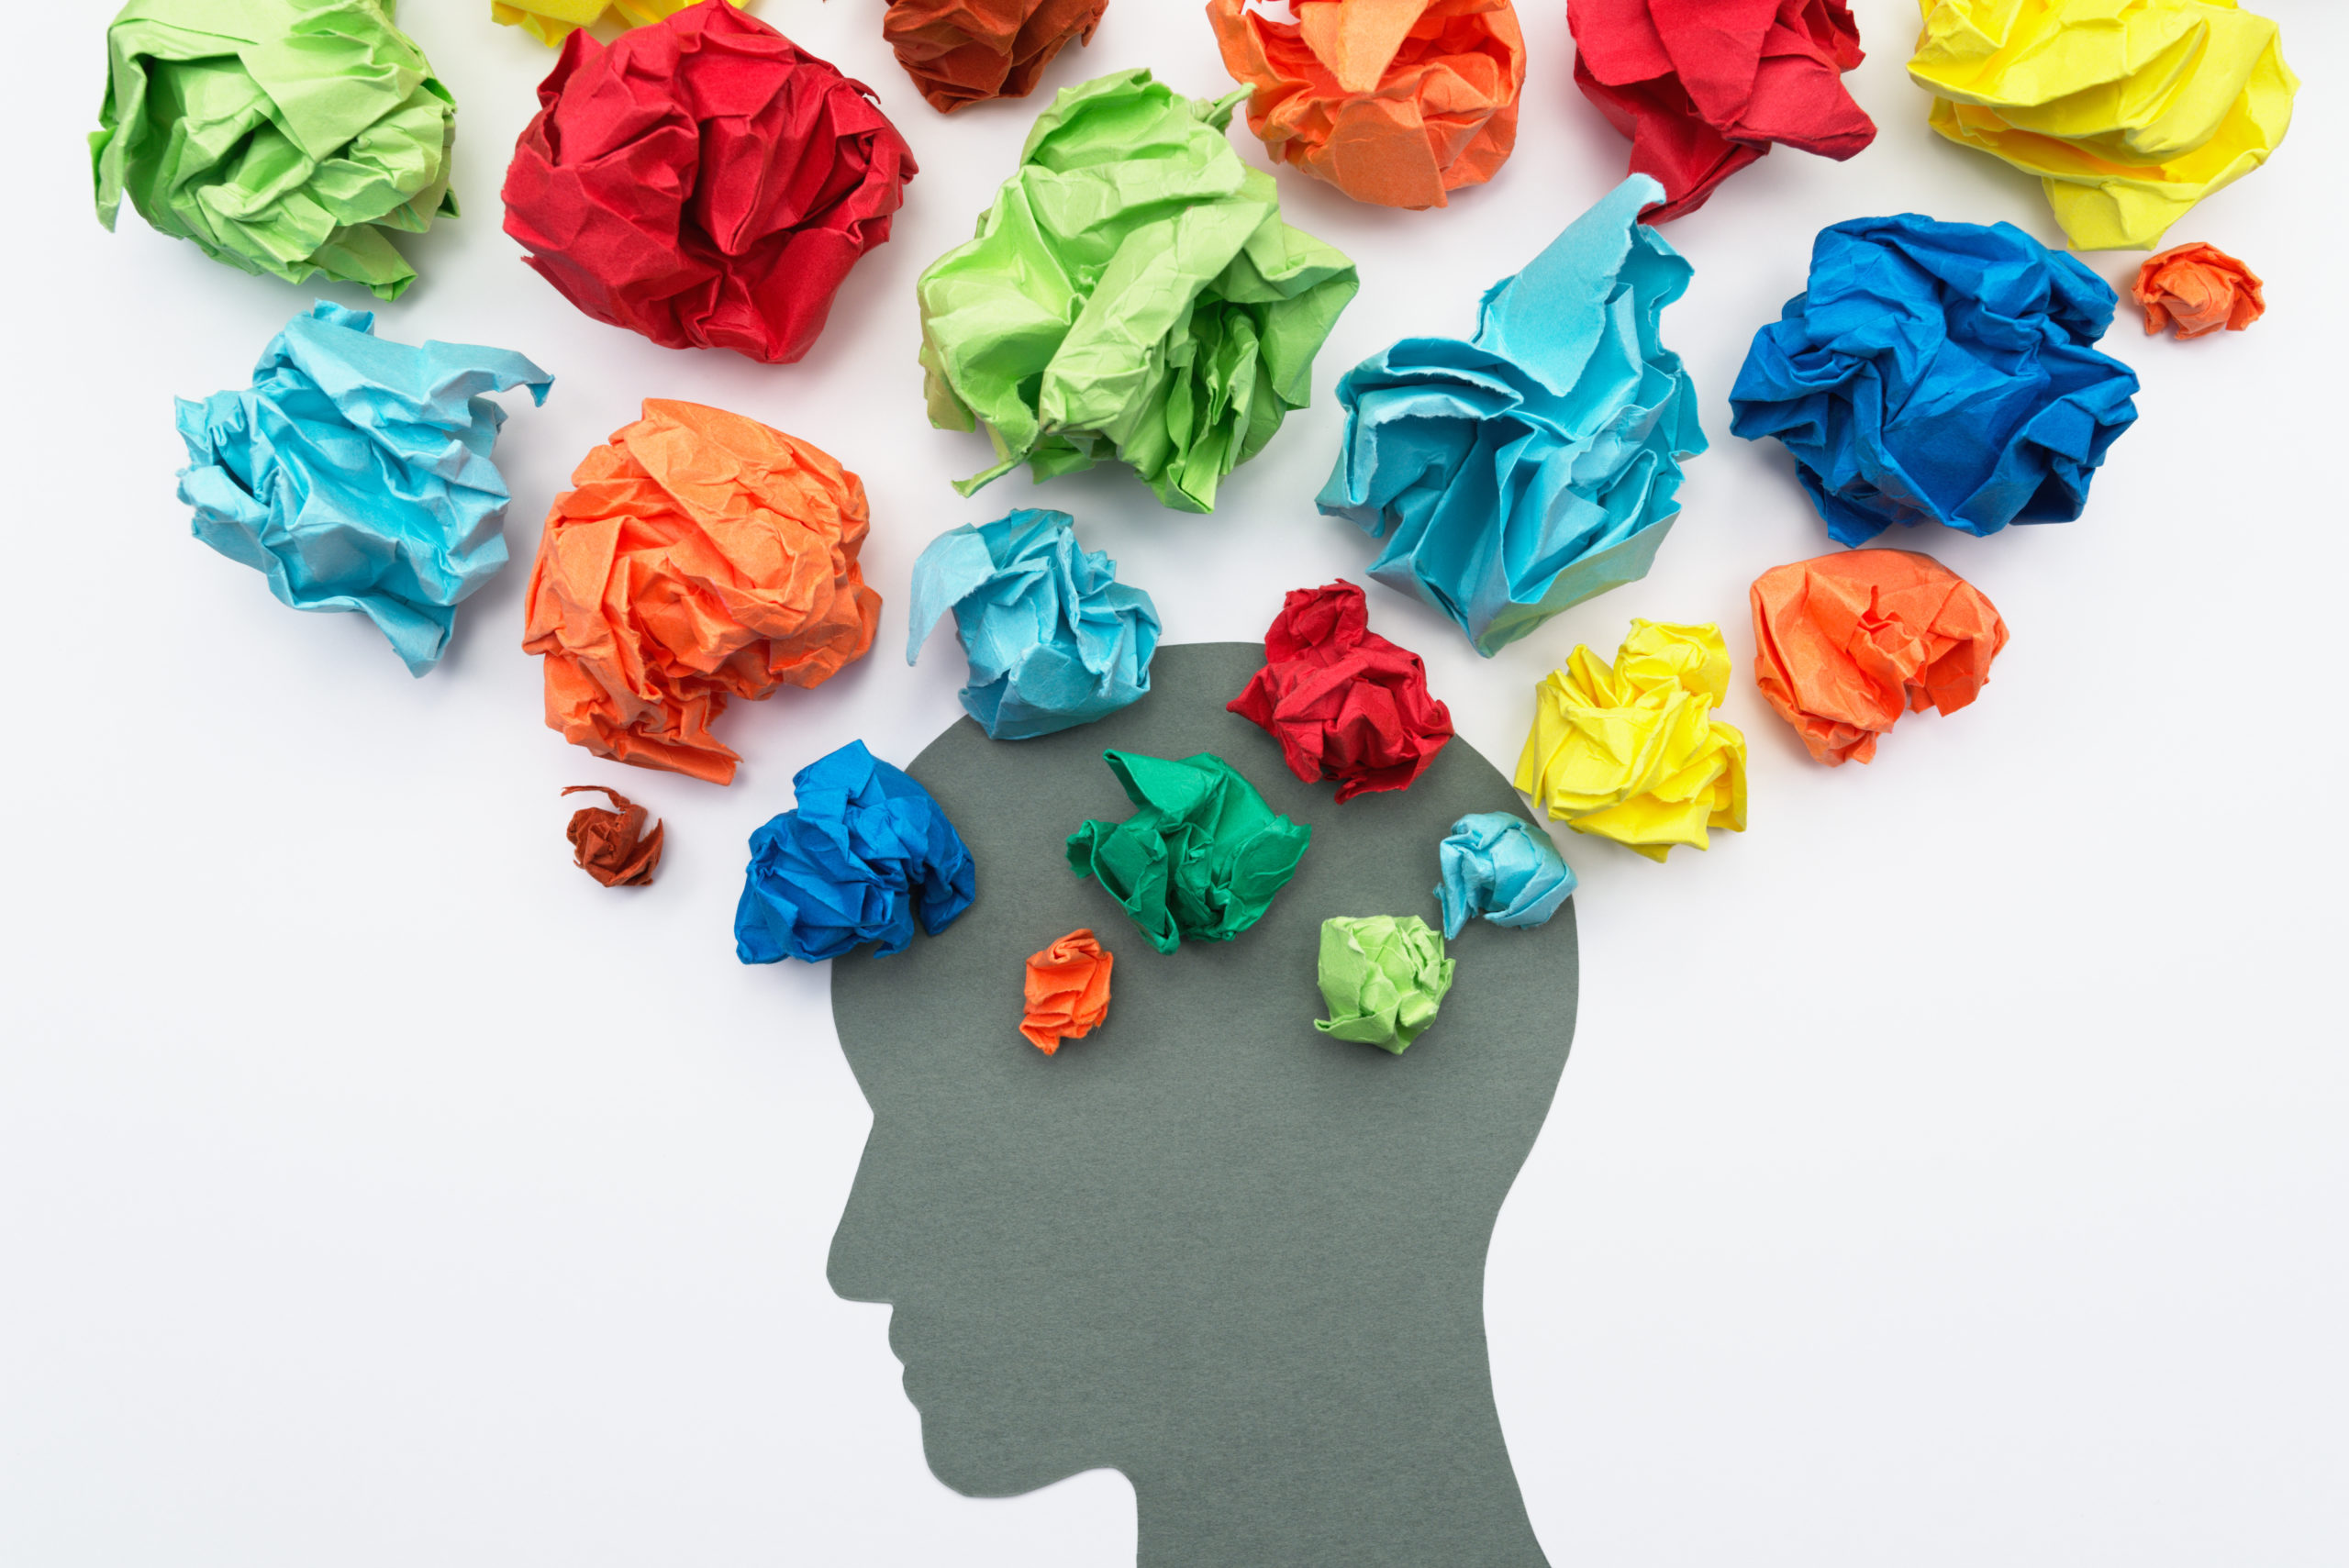 This is your brain on lies - Crumpled pieces of colorful paper arranged around the image of a head to represent thoughts